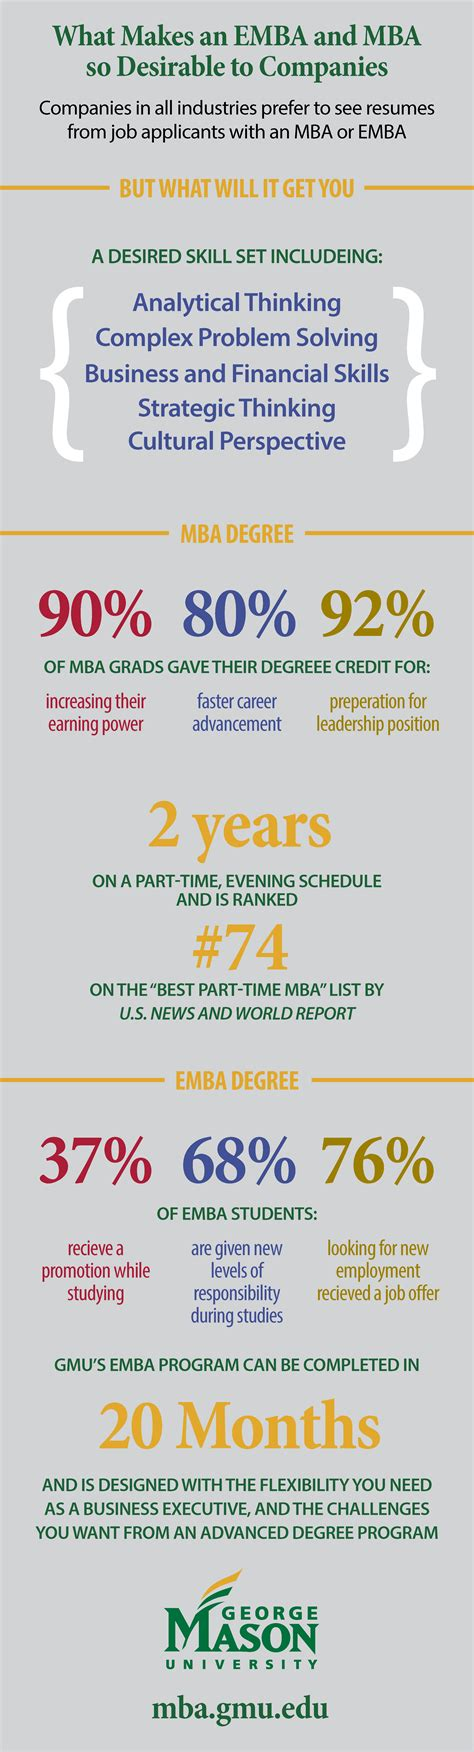 Part Time Mba Without Gmat by What Makes An Emba Mba So Desirable To Companies